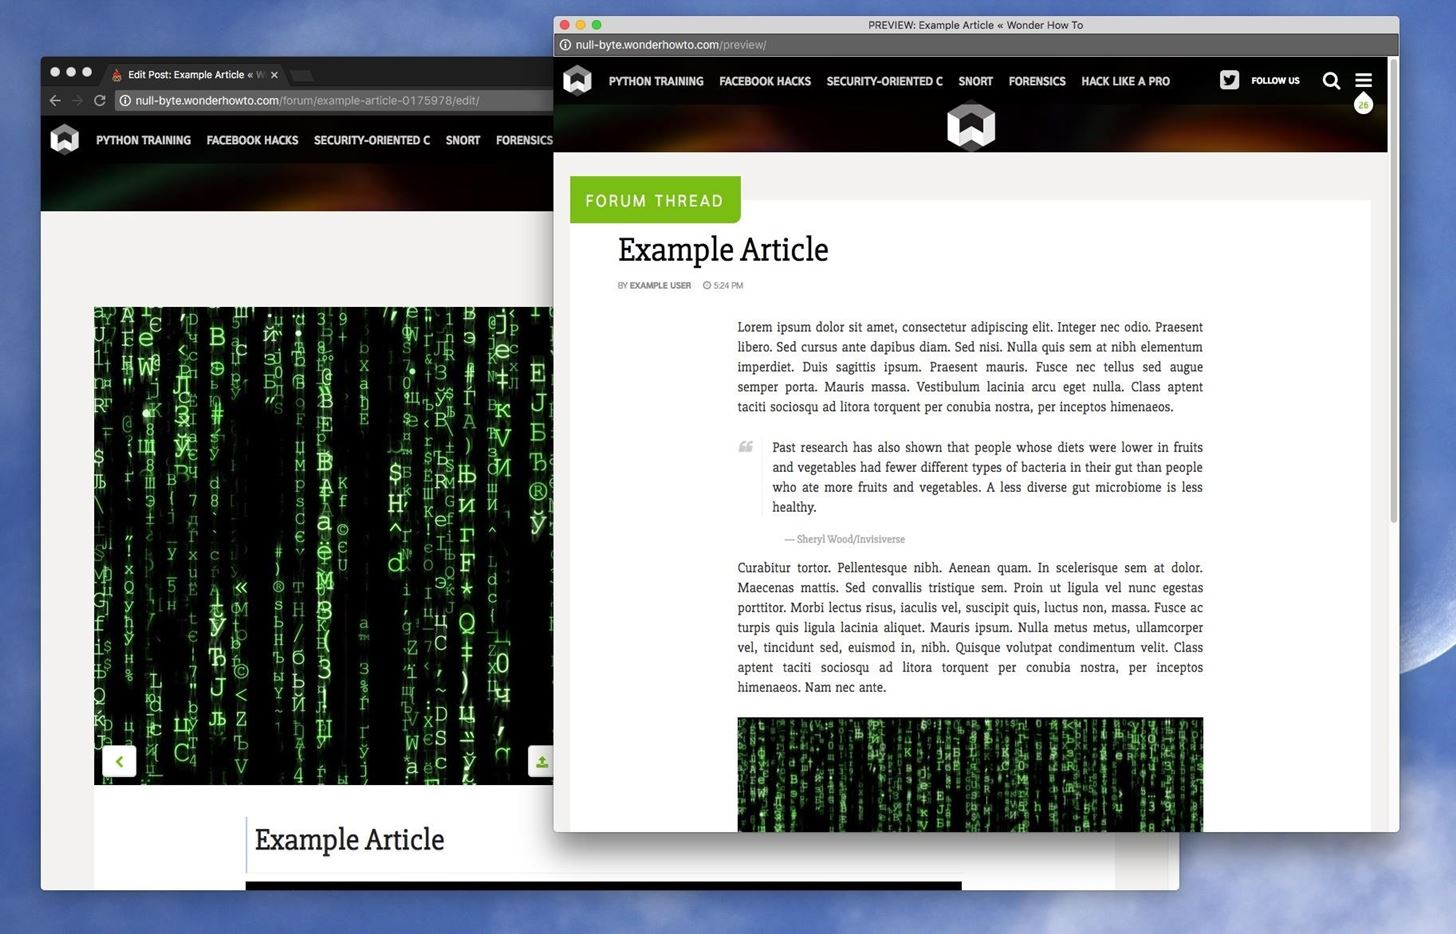 How to Write Articles or Ask Questions on WonderHowTo